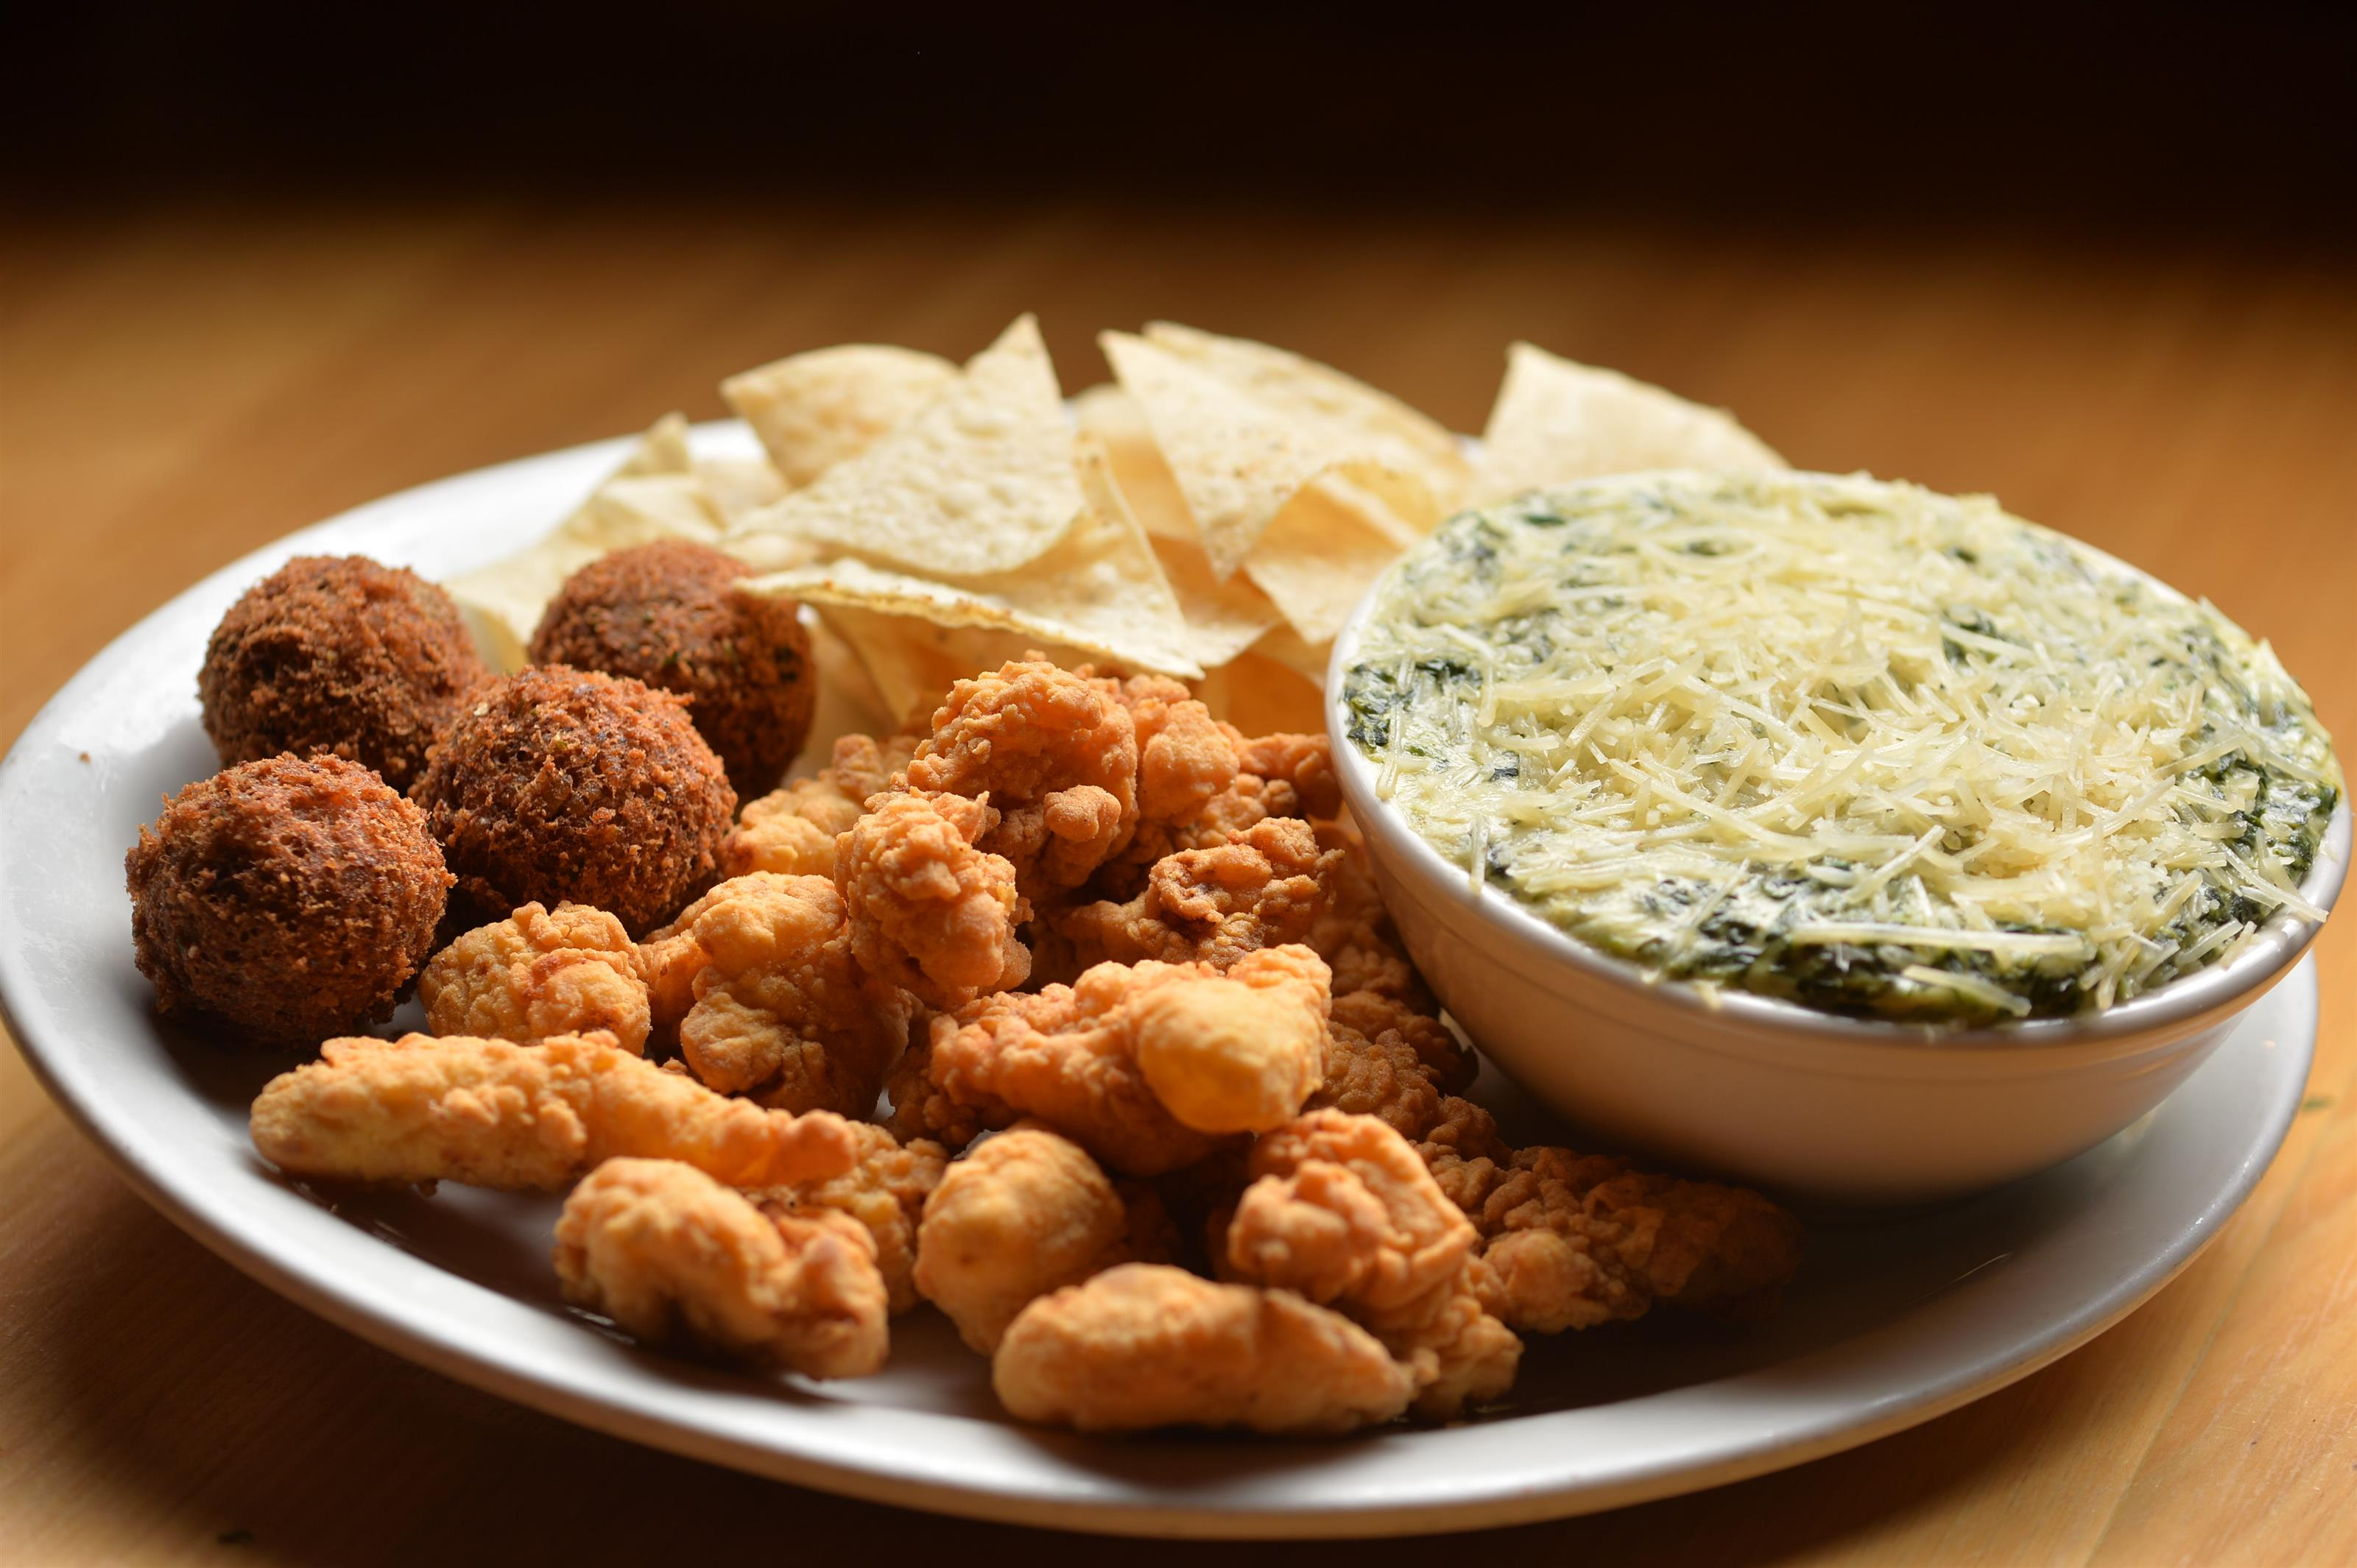 spinach dip and chips with popcorn chicken and hush puppies